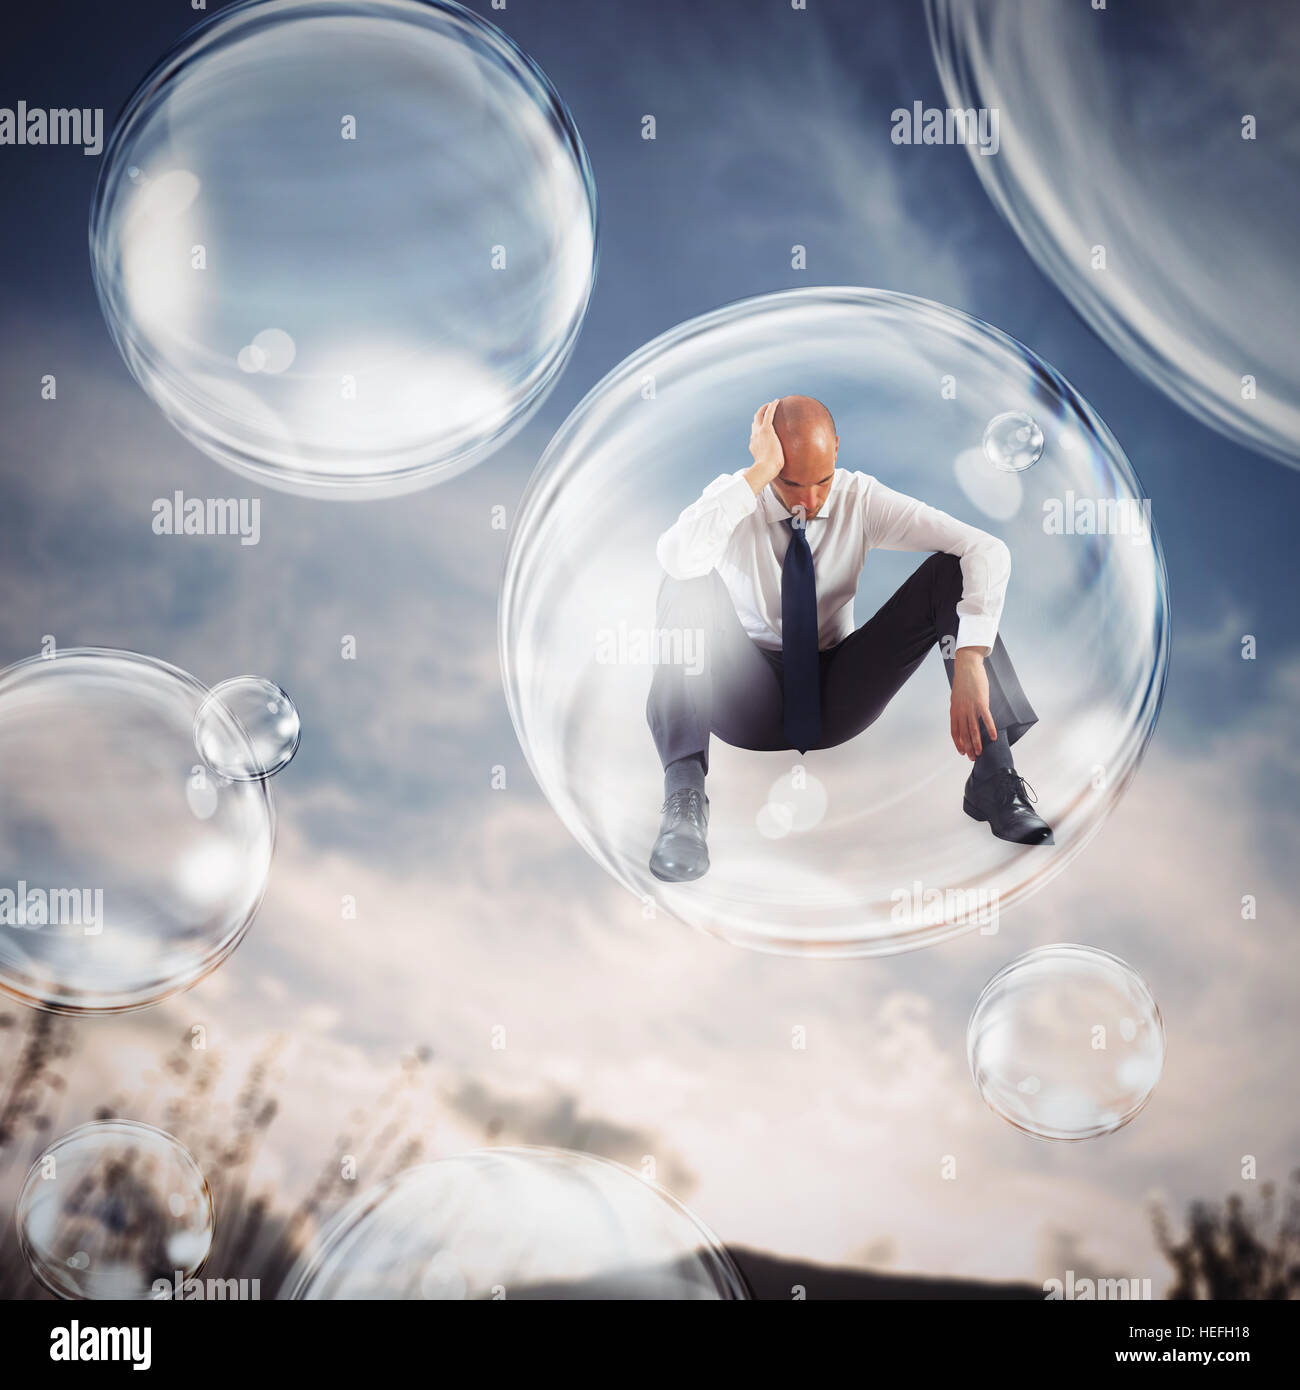 Isolate themselves inside a bubble - Stock Image